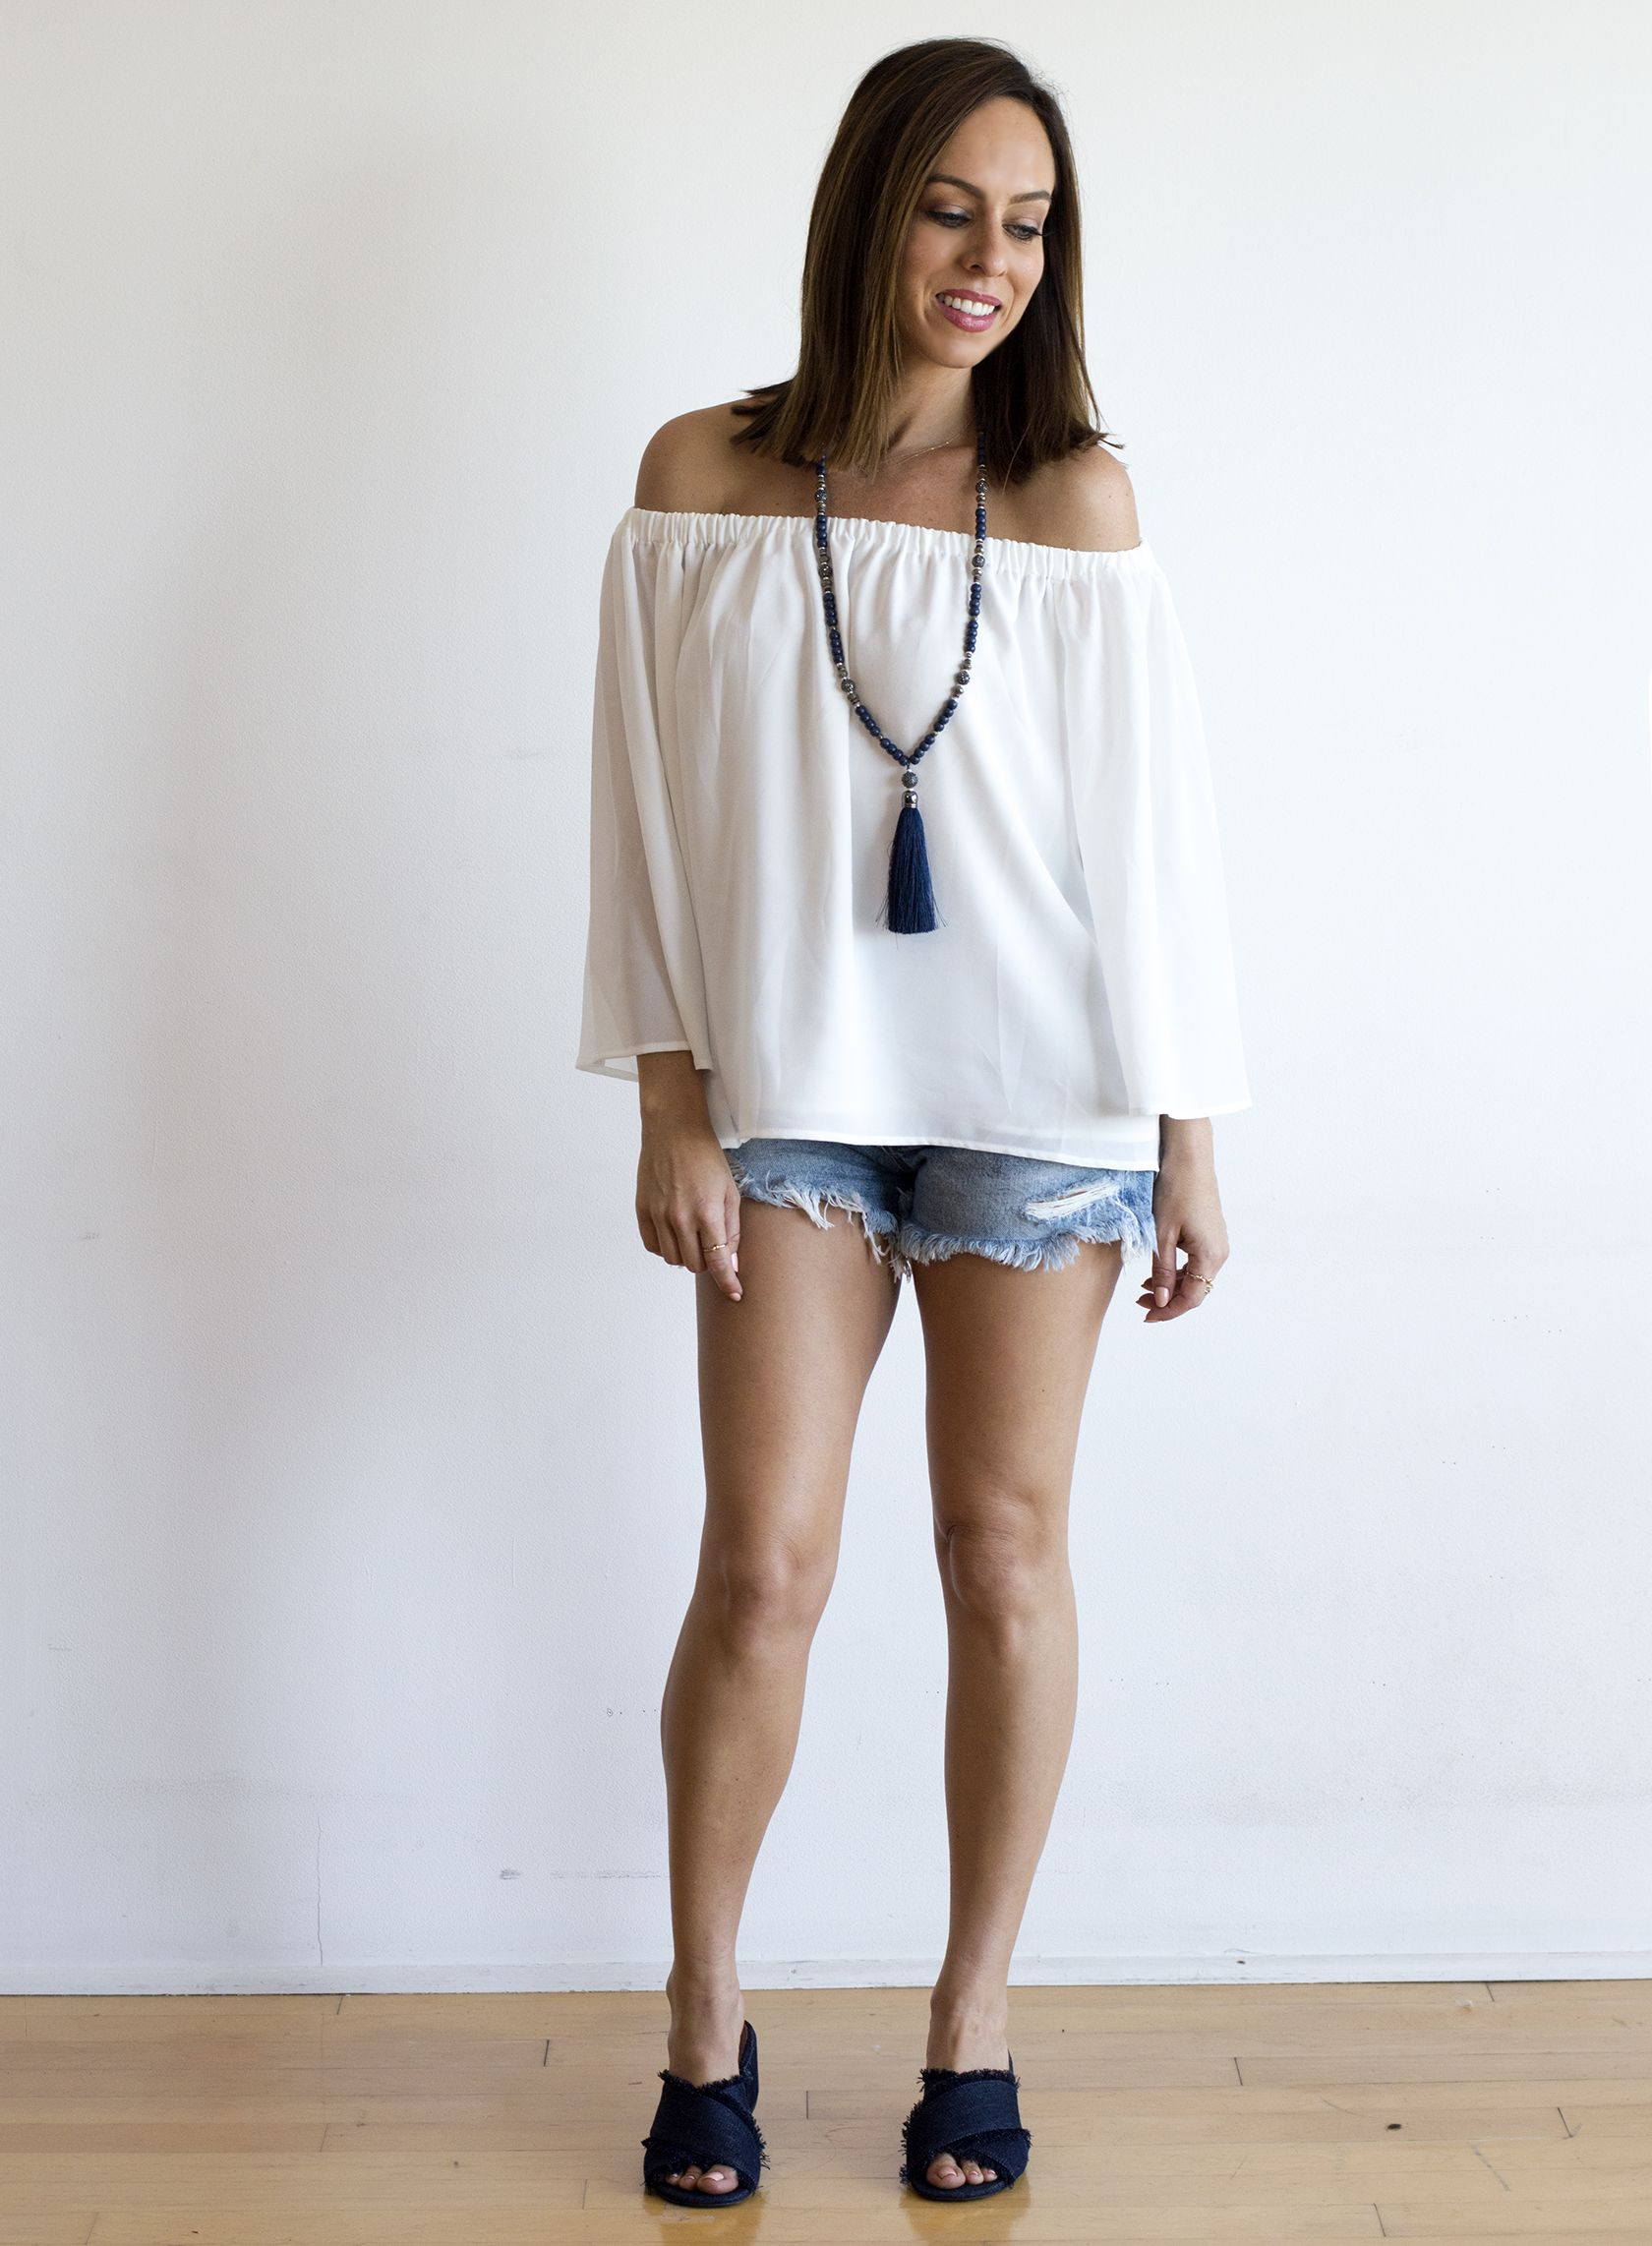 ea7ae272ec6 Sydne Style shows how to wear the off the shoulder trend with summer outfit  ideas with shorts